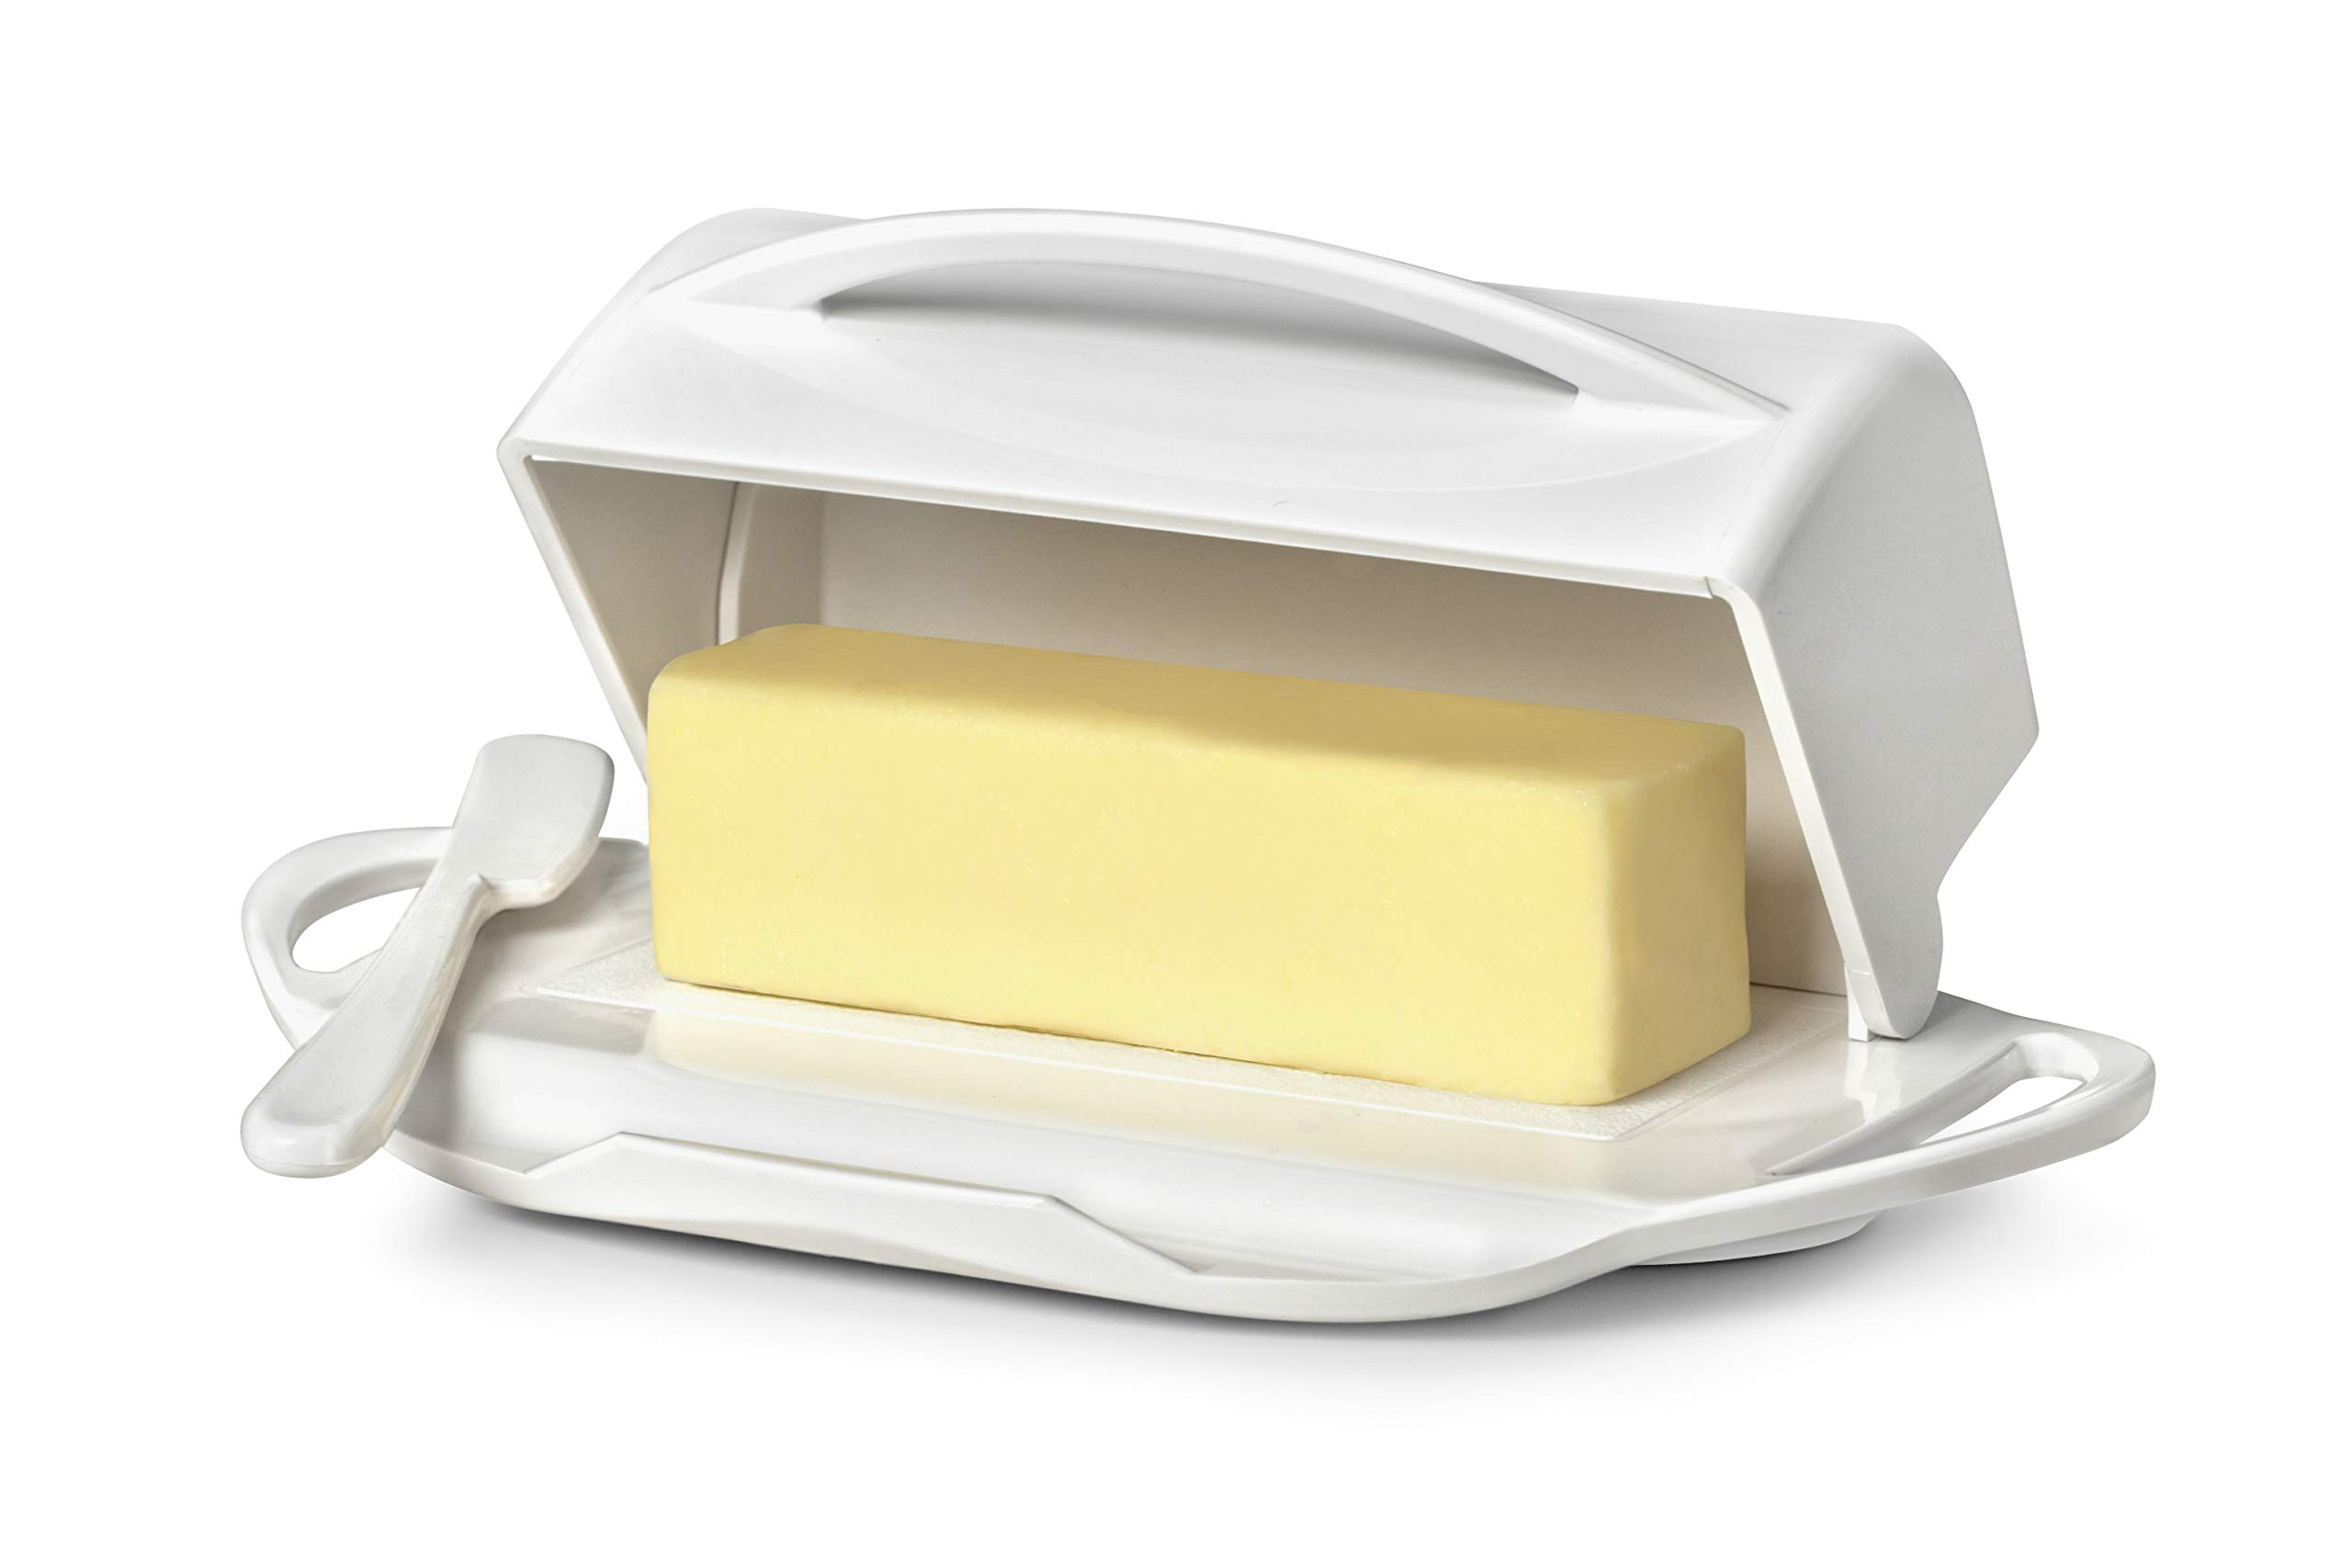 Butterie Flip-Top Butter Dish with Matching Spreader by Butterie (Image #2)